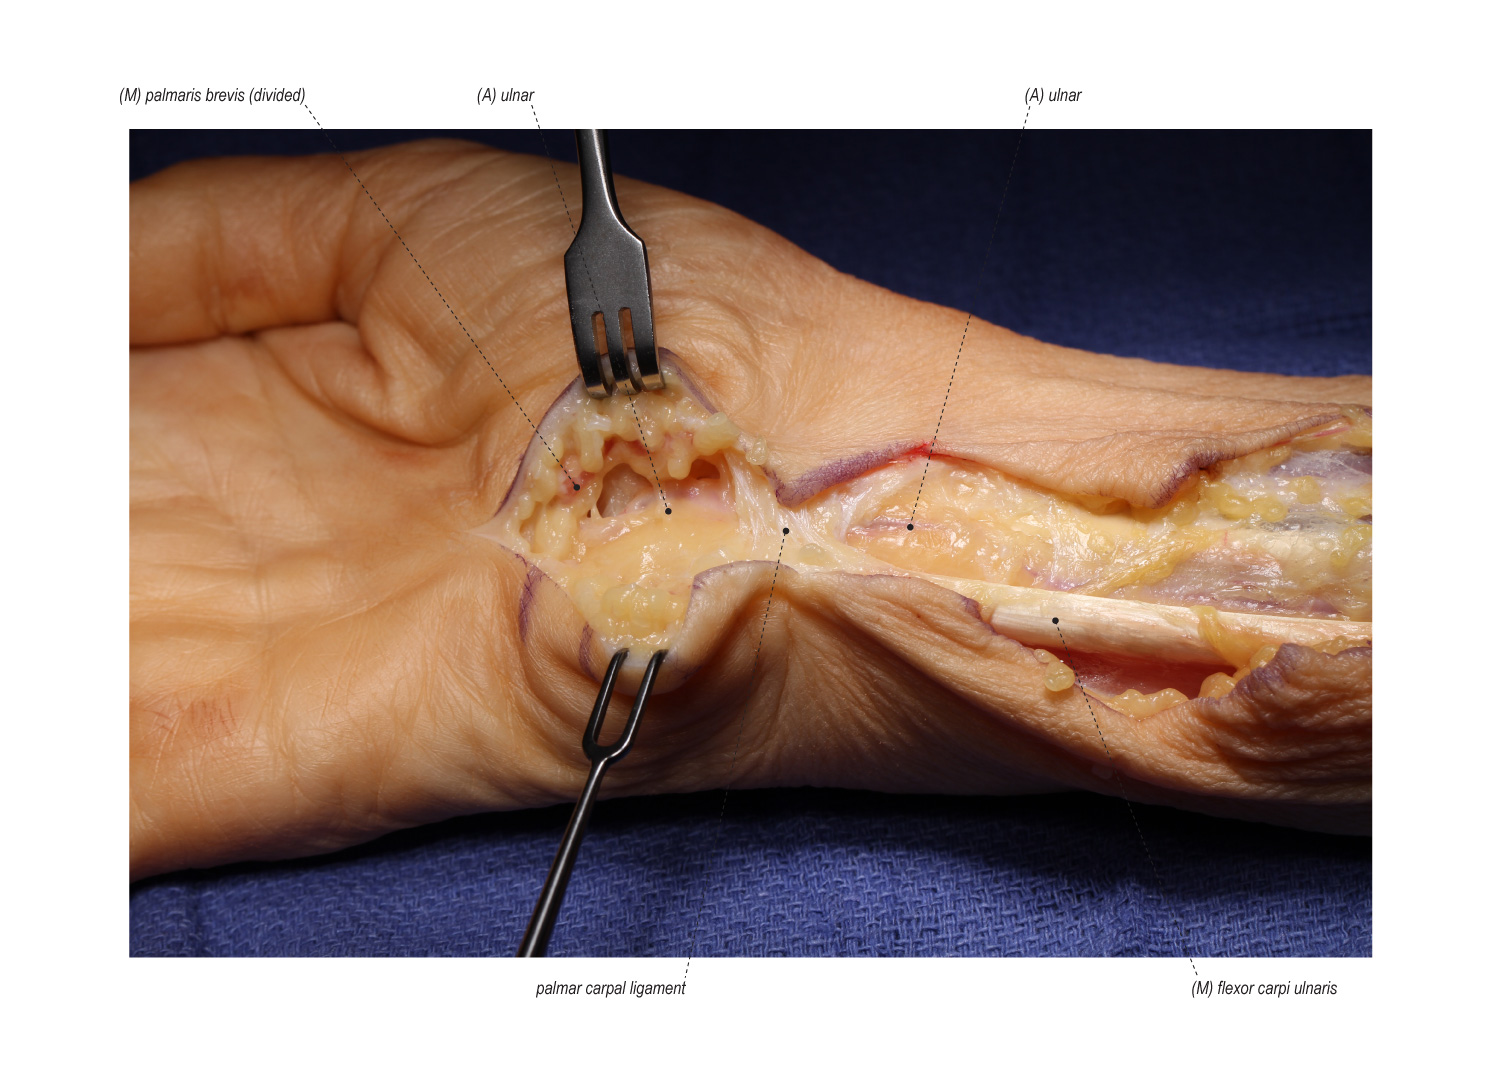 Anterior Interosseous to Ulnar Motor Supercharge Nerve Transfer